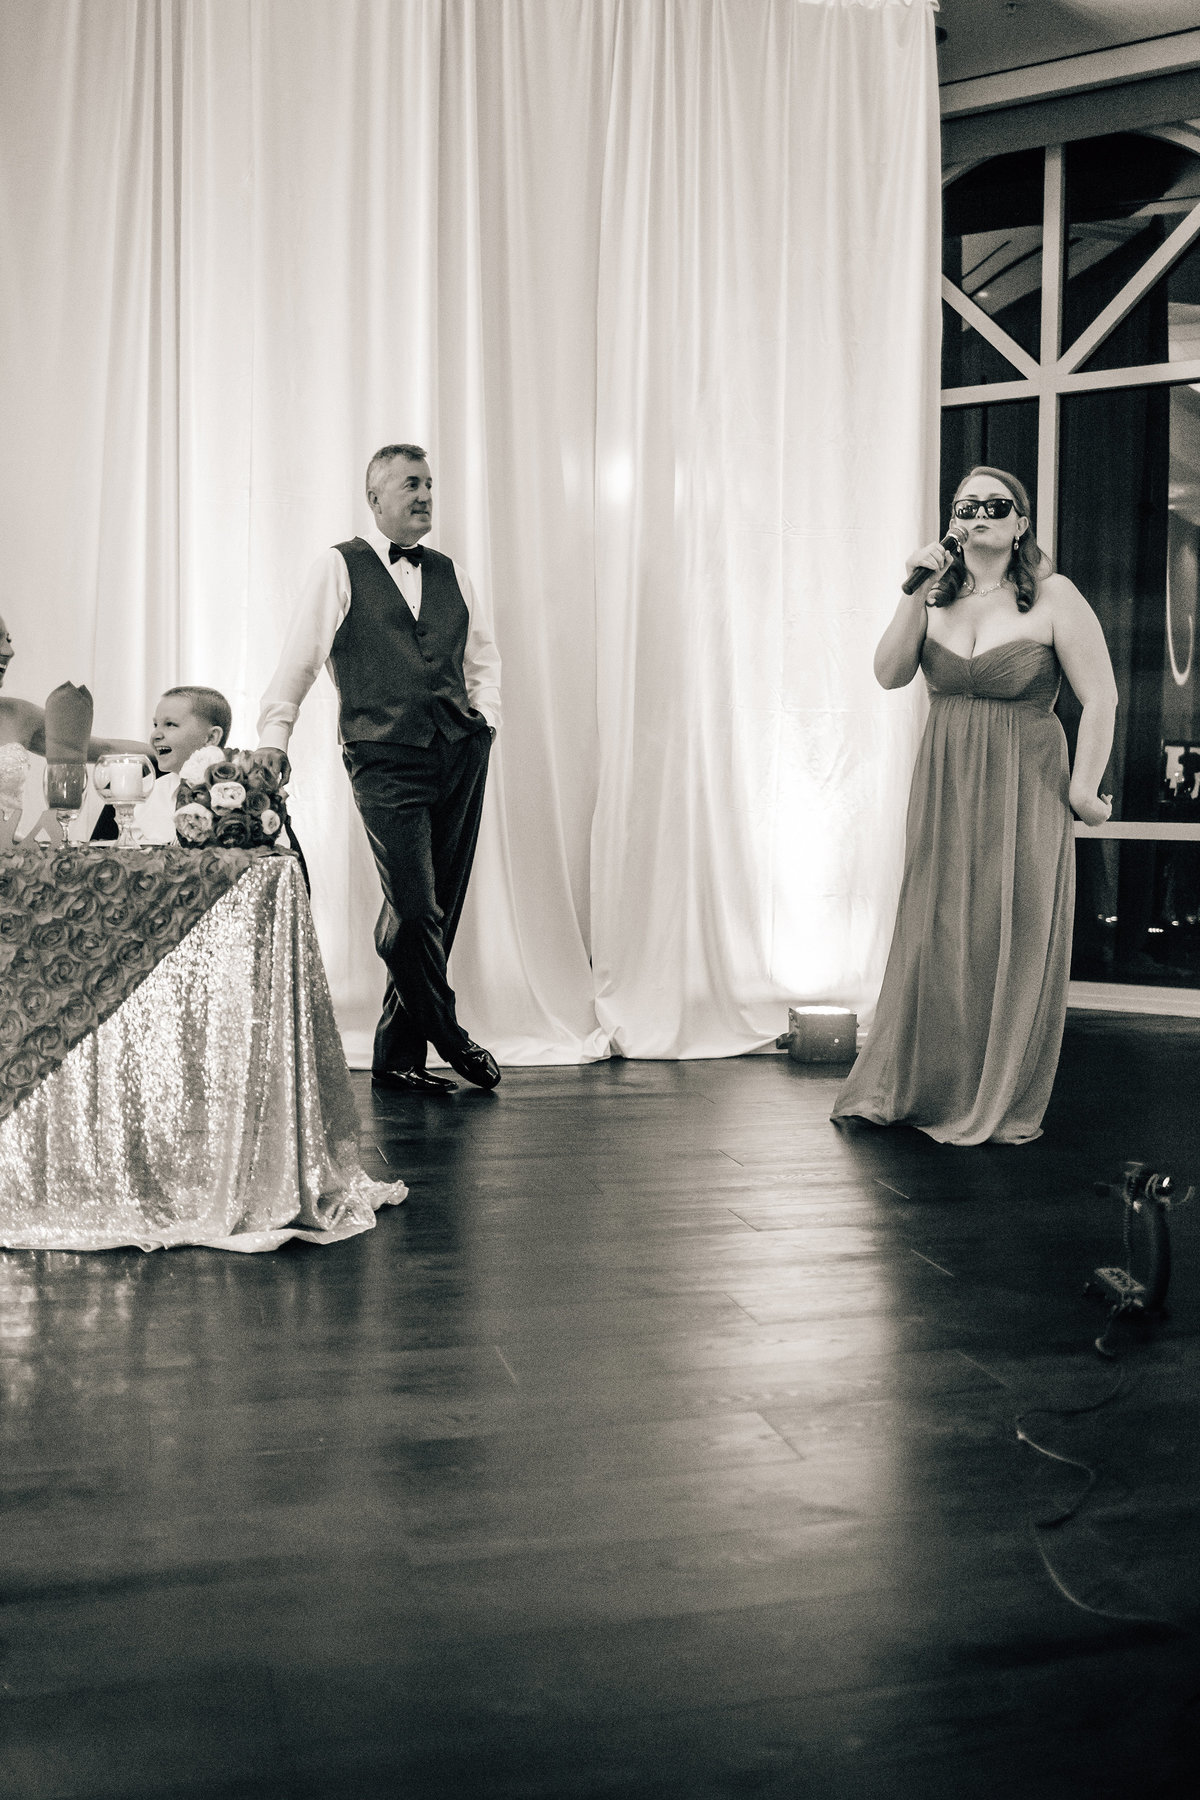 Kimberly_Hoyle_Photography_Milam_The_Back_Center_Melbourne_Wedding-75